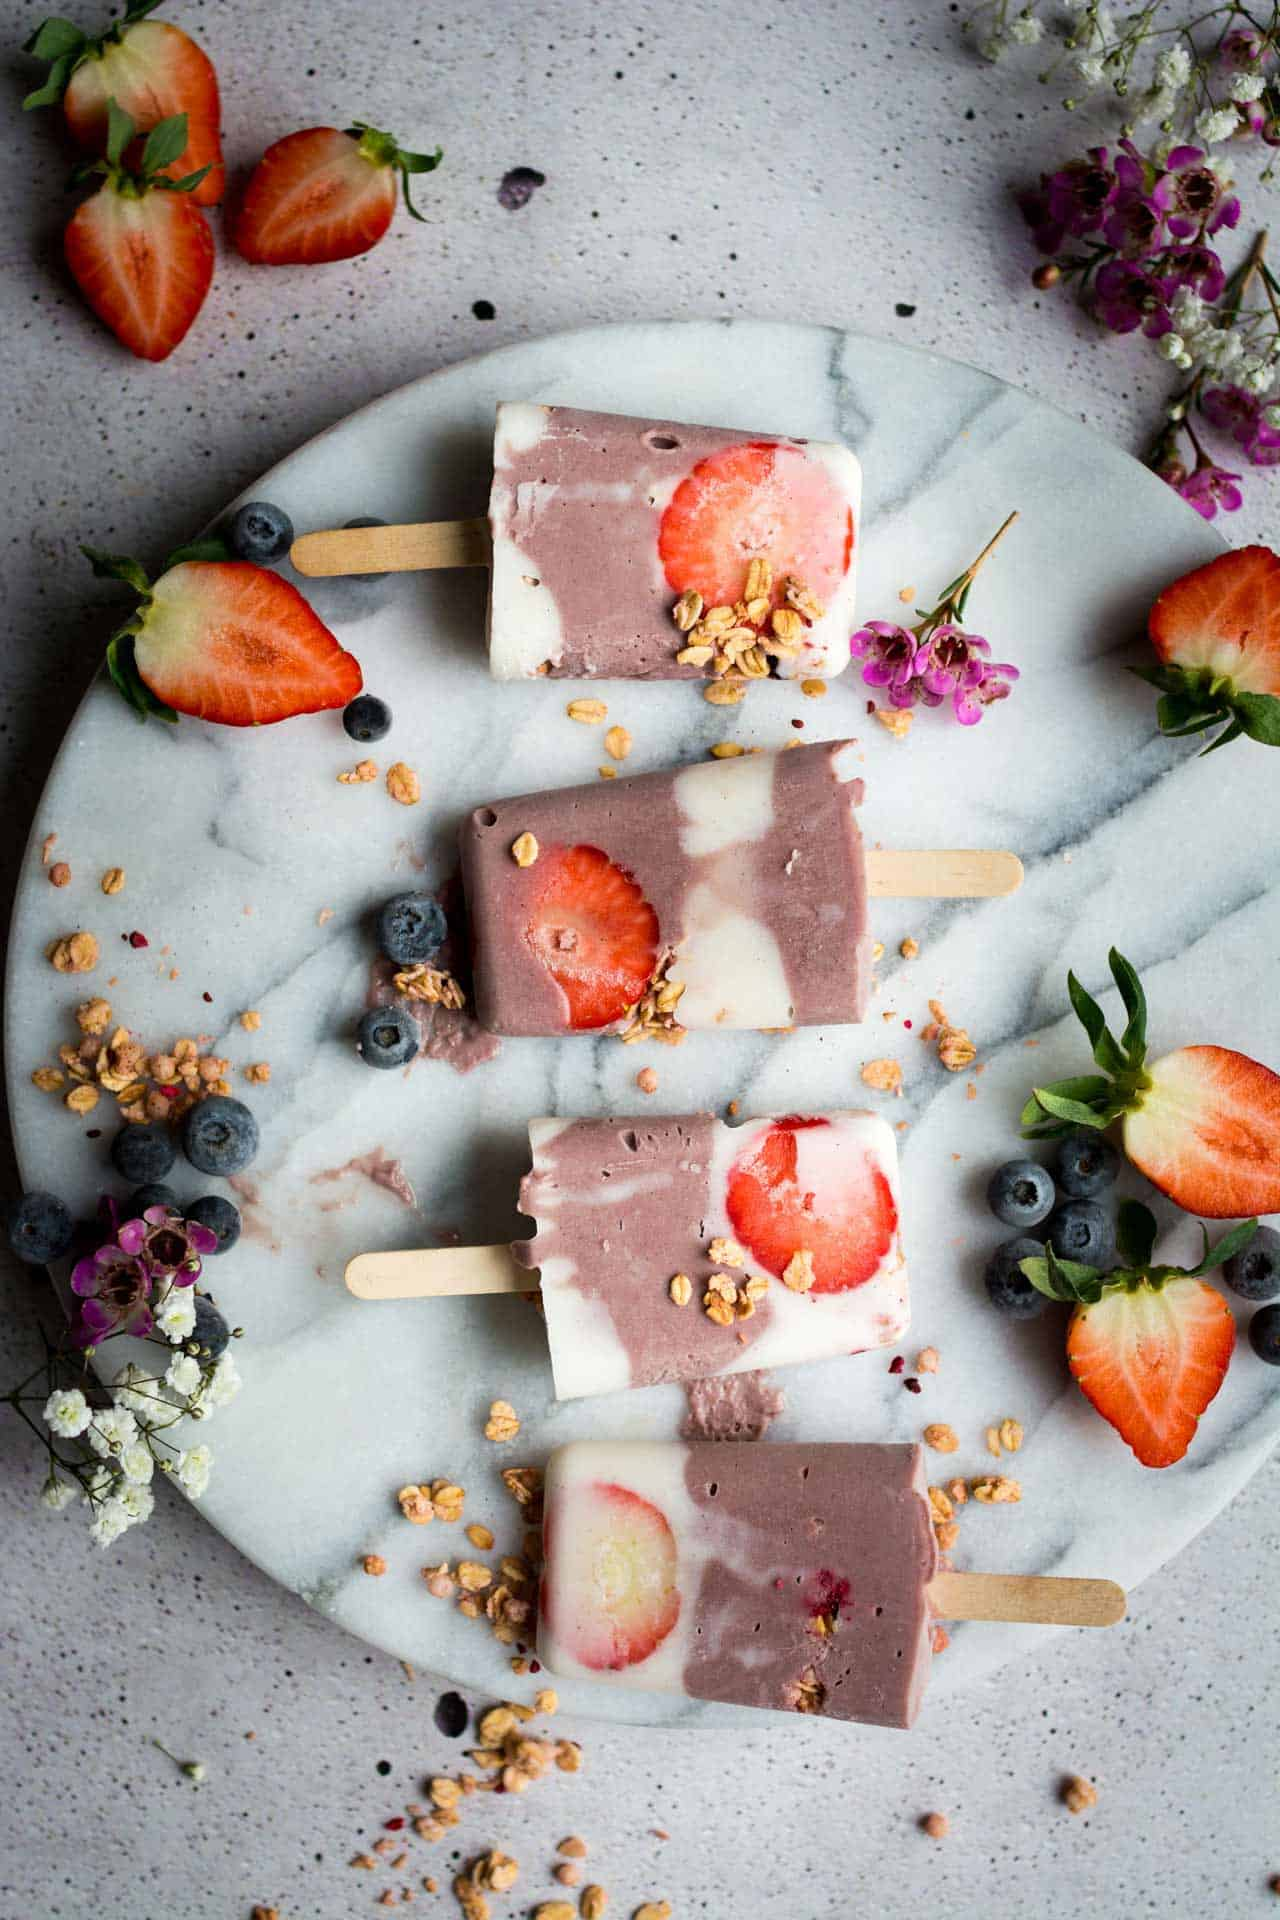 Acai granola breakfast popsicles + 15 Farmers market recipes to make in May! Delicious, vegetarian, (mostly) healthy spring/summer recipes made with fresh, seasonal produce from your local farmers market or CSA bin. Eat local! // Rhubarbarians